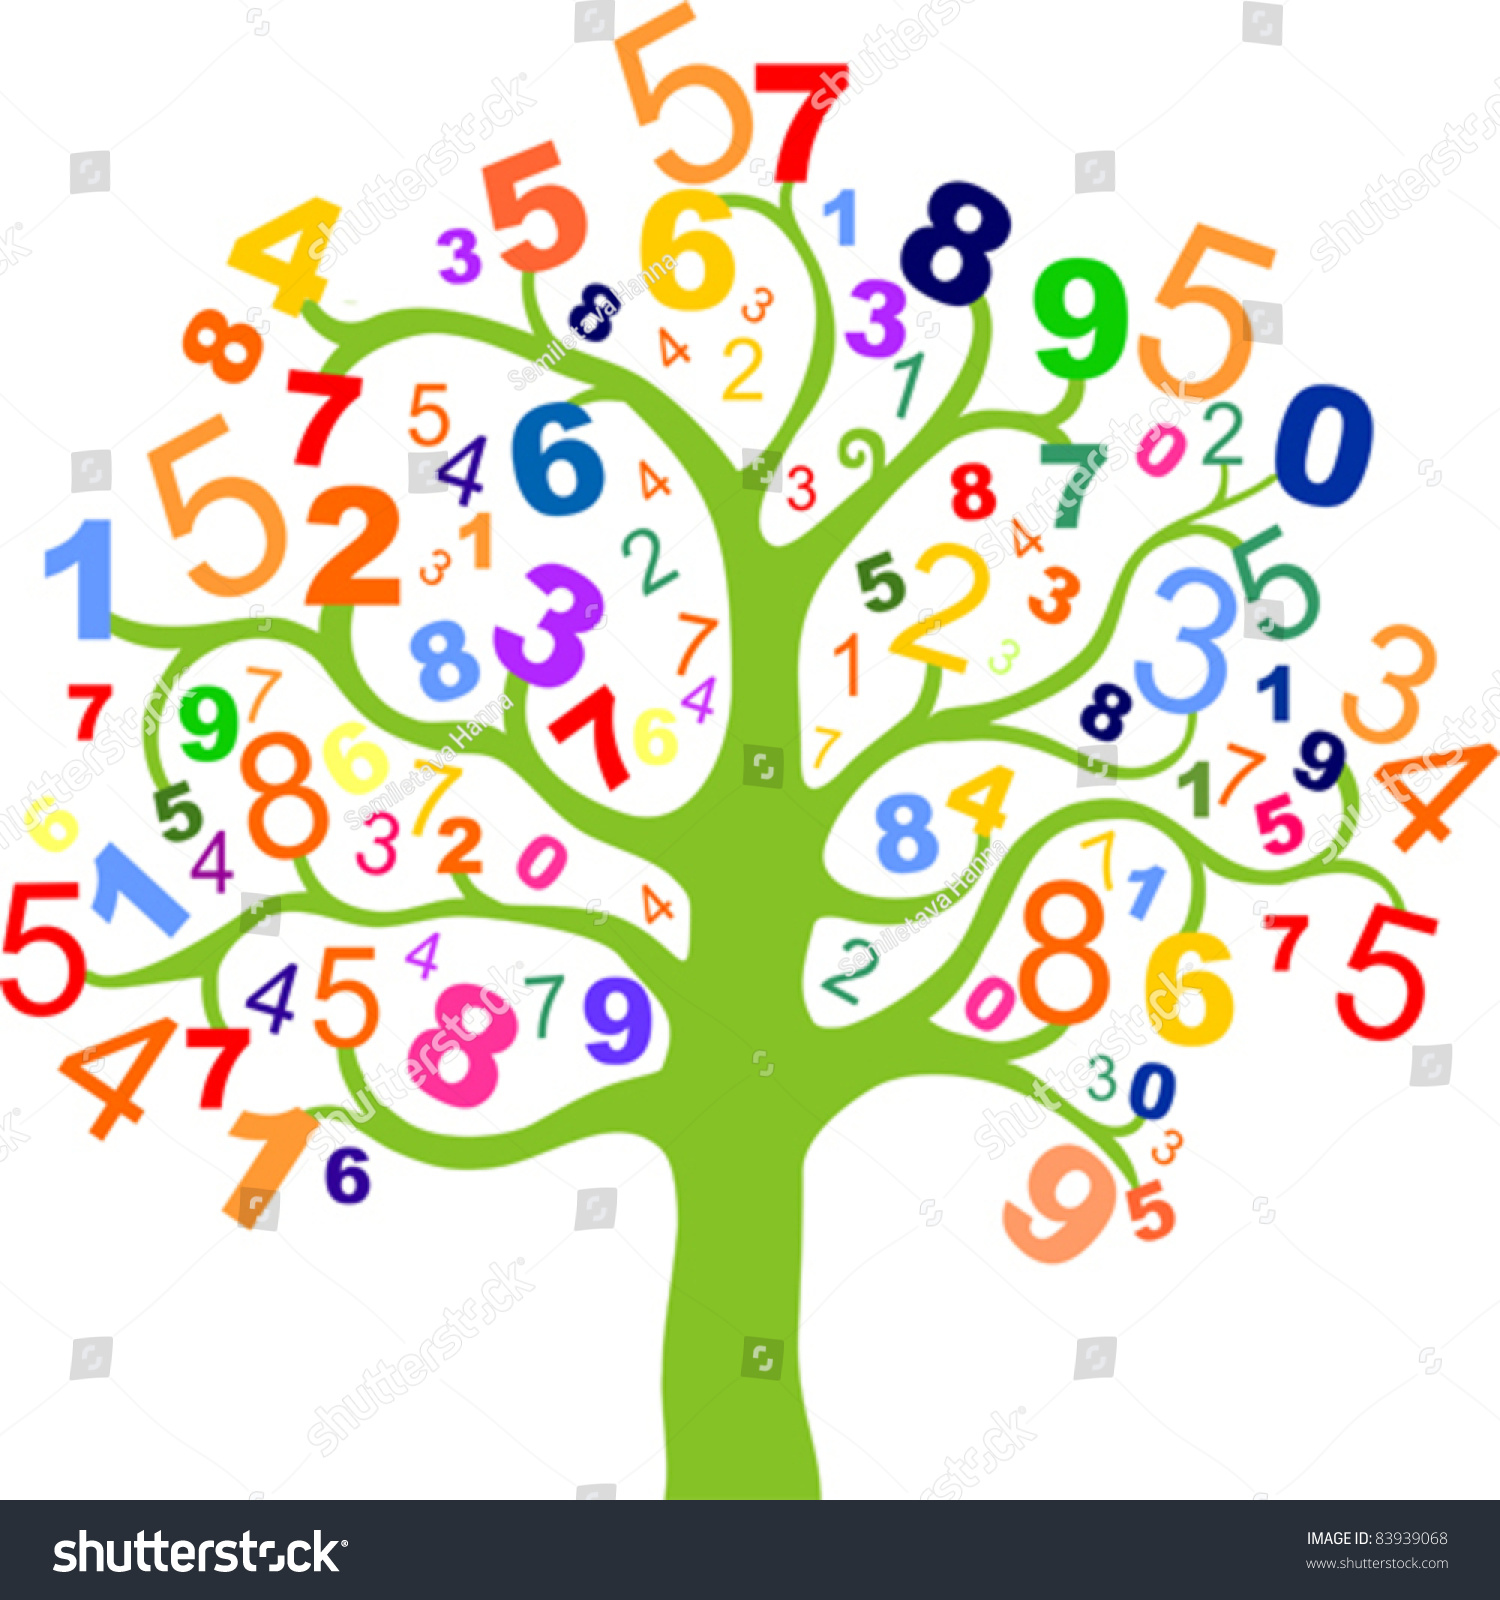 Abstract Colorful Tree With Numbers Isolated On White Background.. Vector Illustration ...